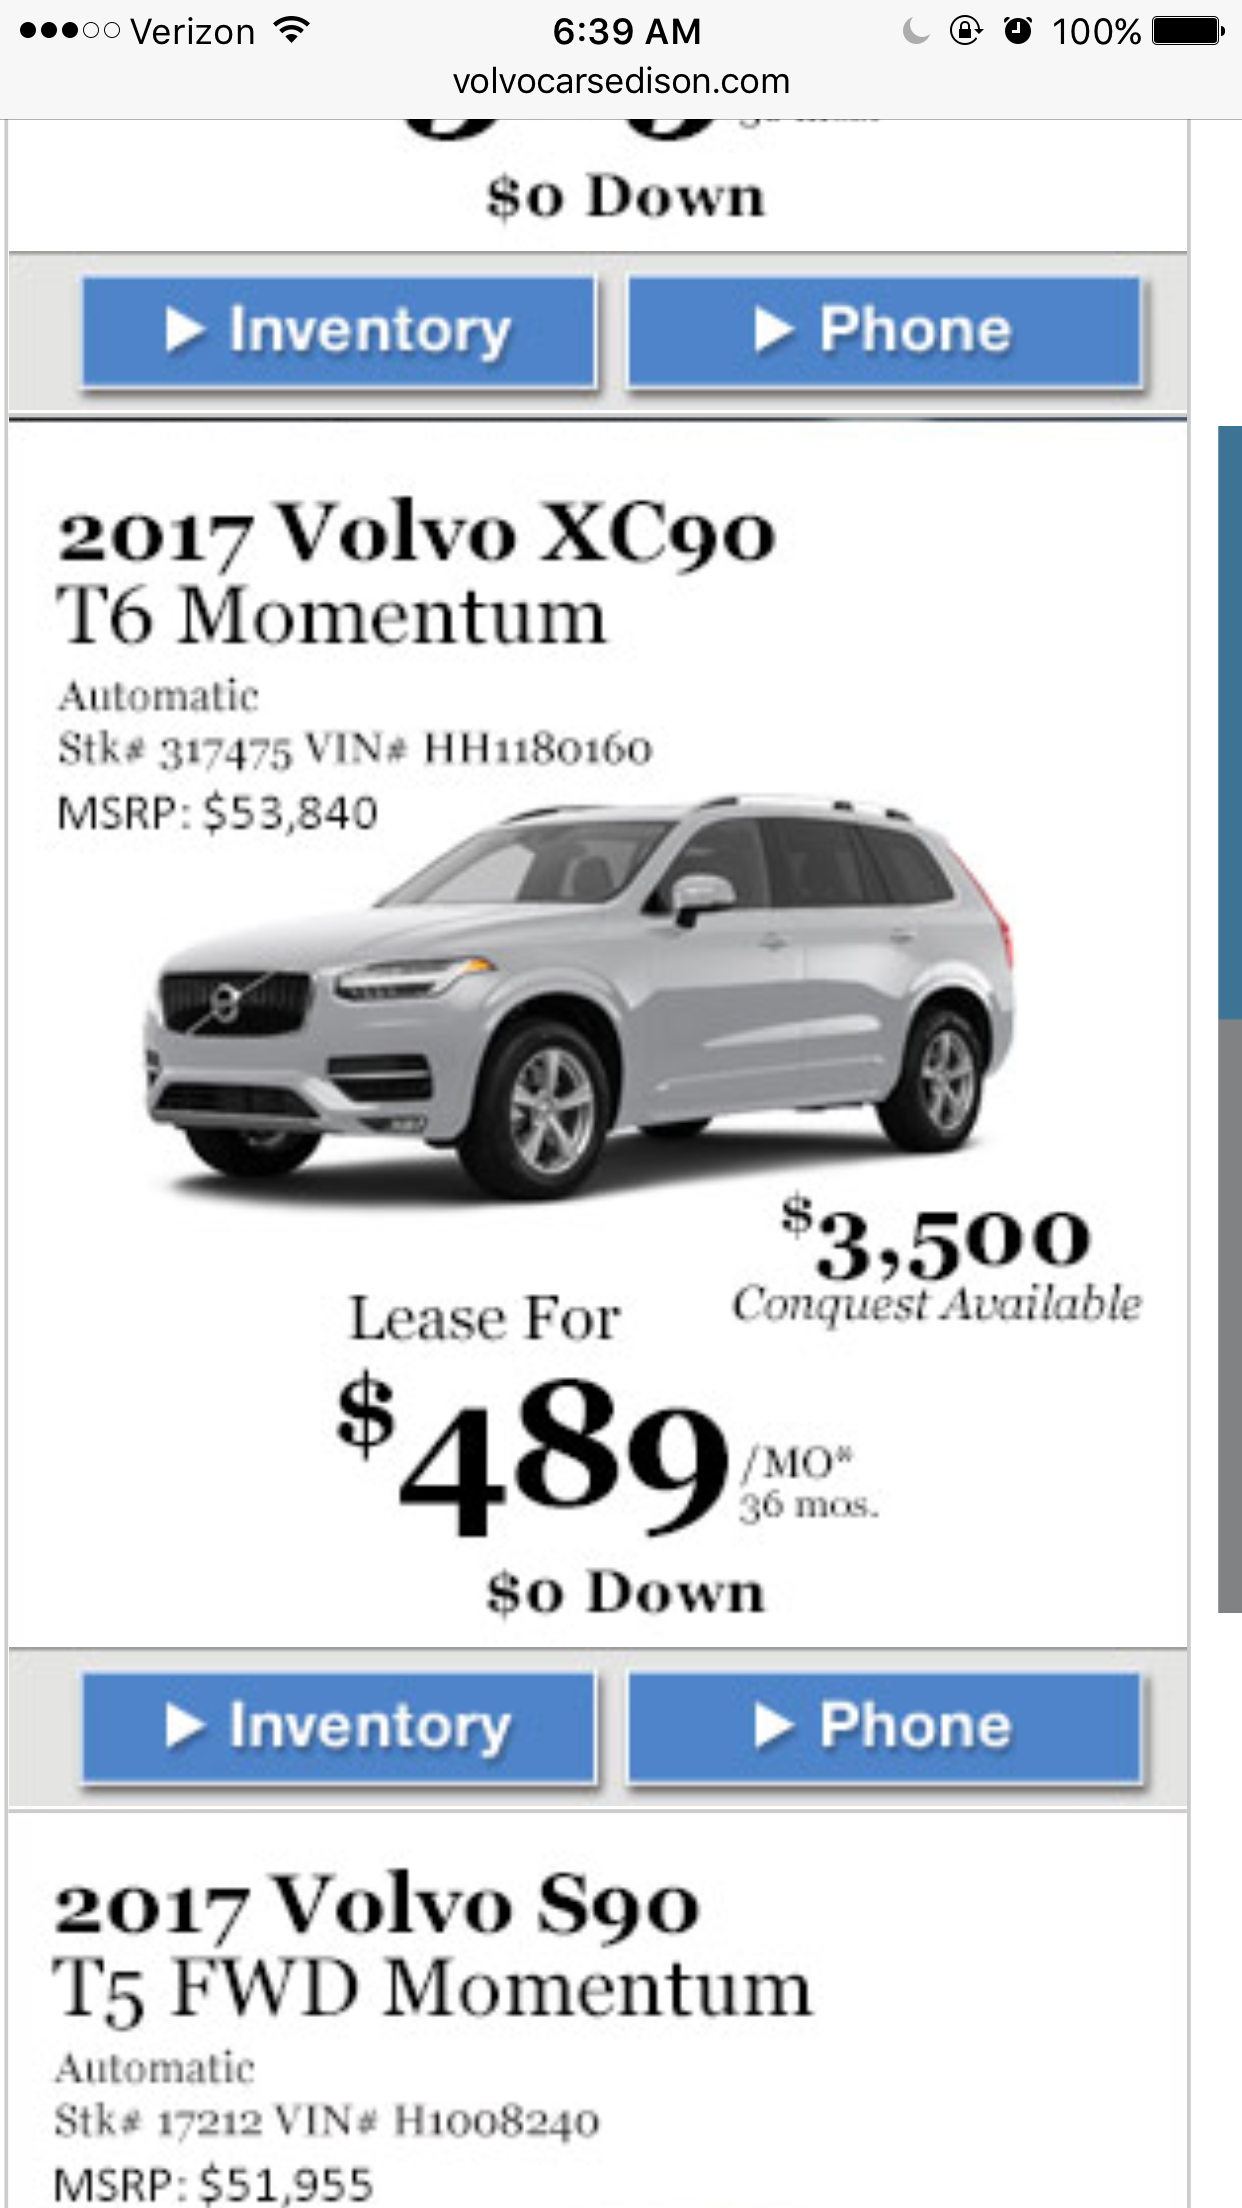 2017 volvo xc90 lease deals and prices page 27 car. Black Bedroom Furniture Sets. Home Design Ideas